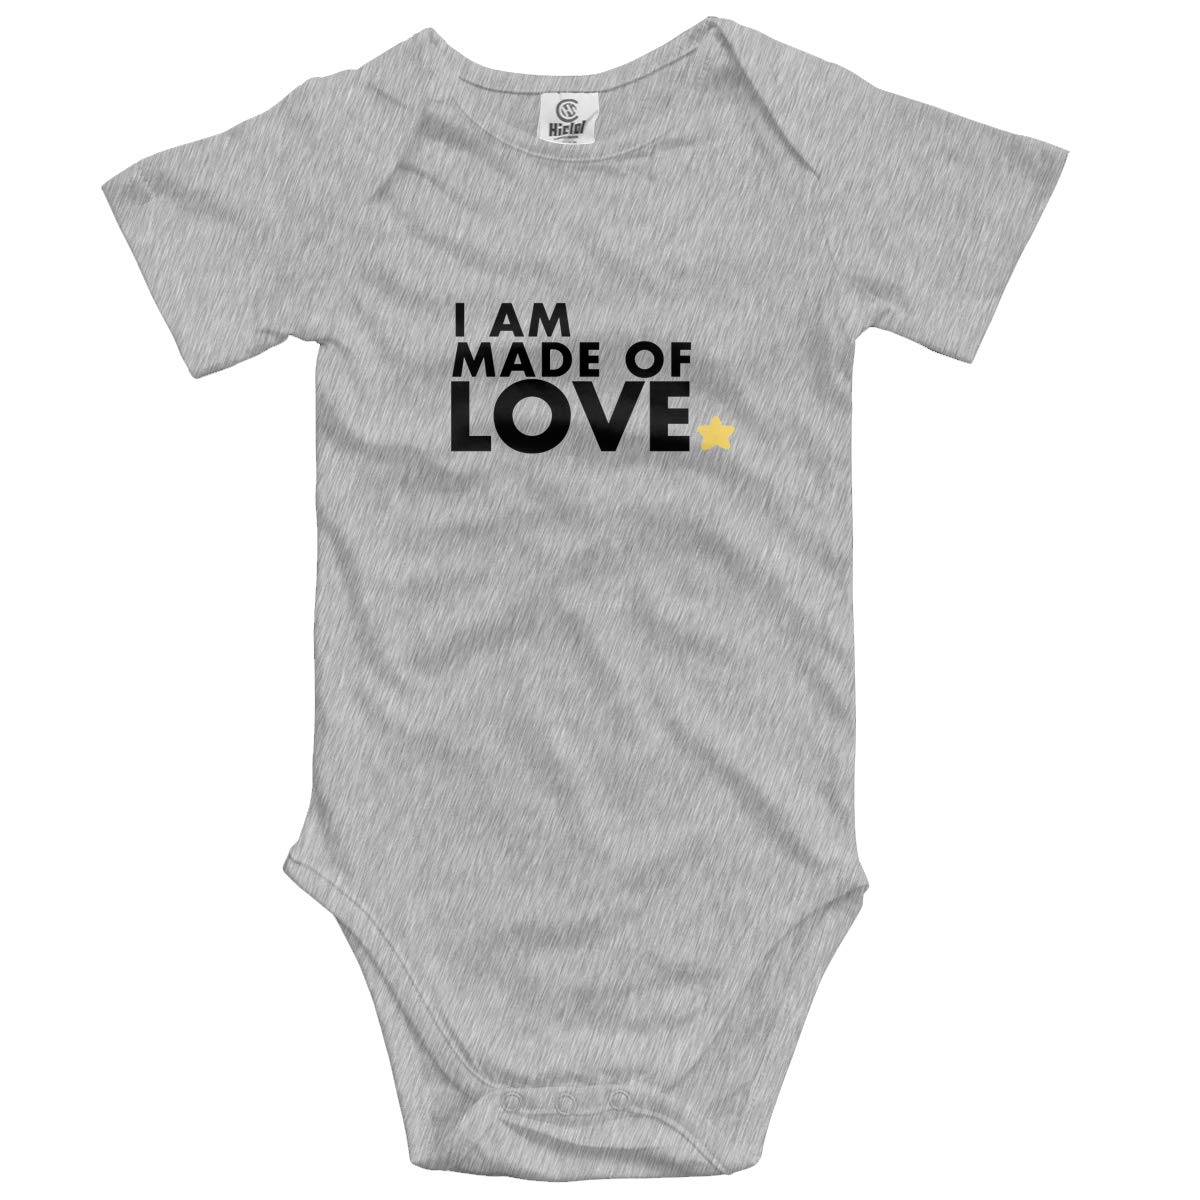 I Am Made of Love Baby Romper 0-18 Months Newborn Baby Girls Boys Layette Rompers Black